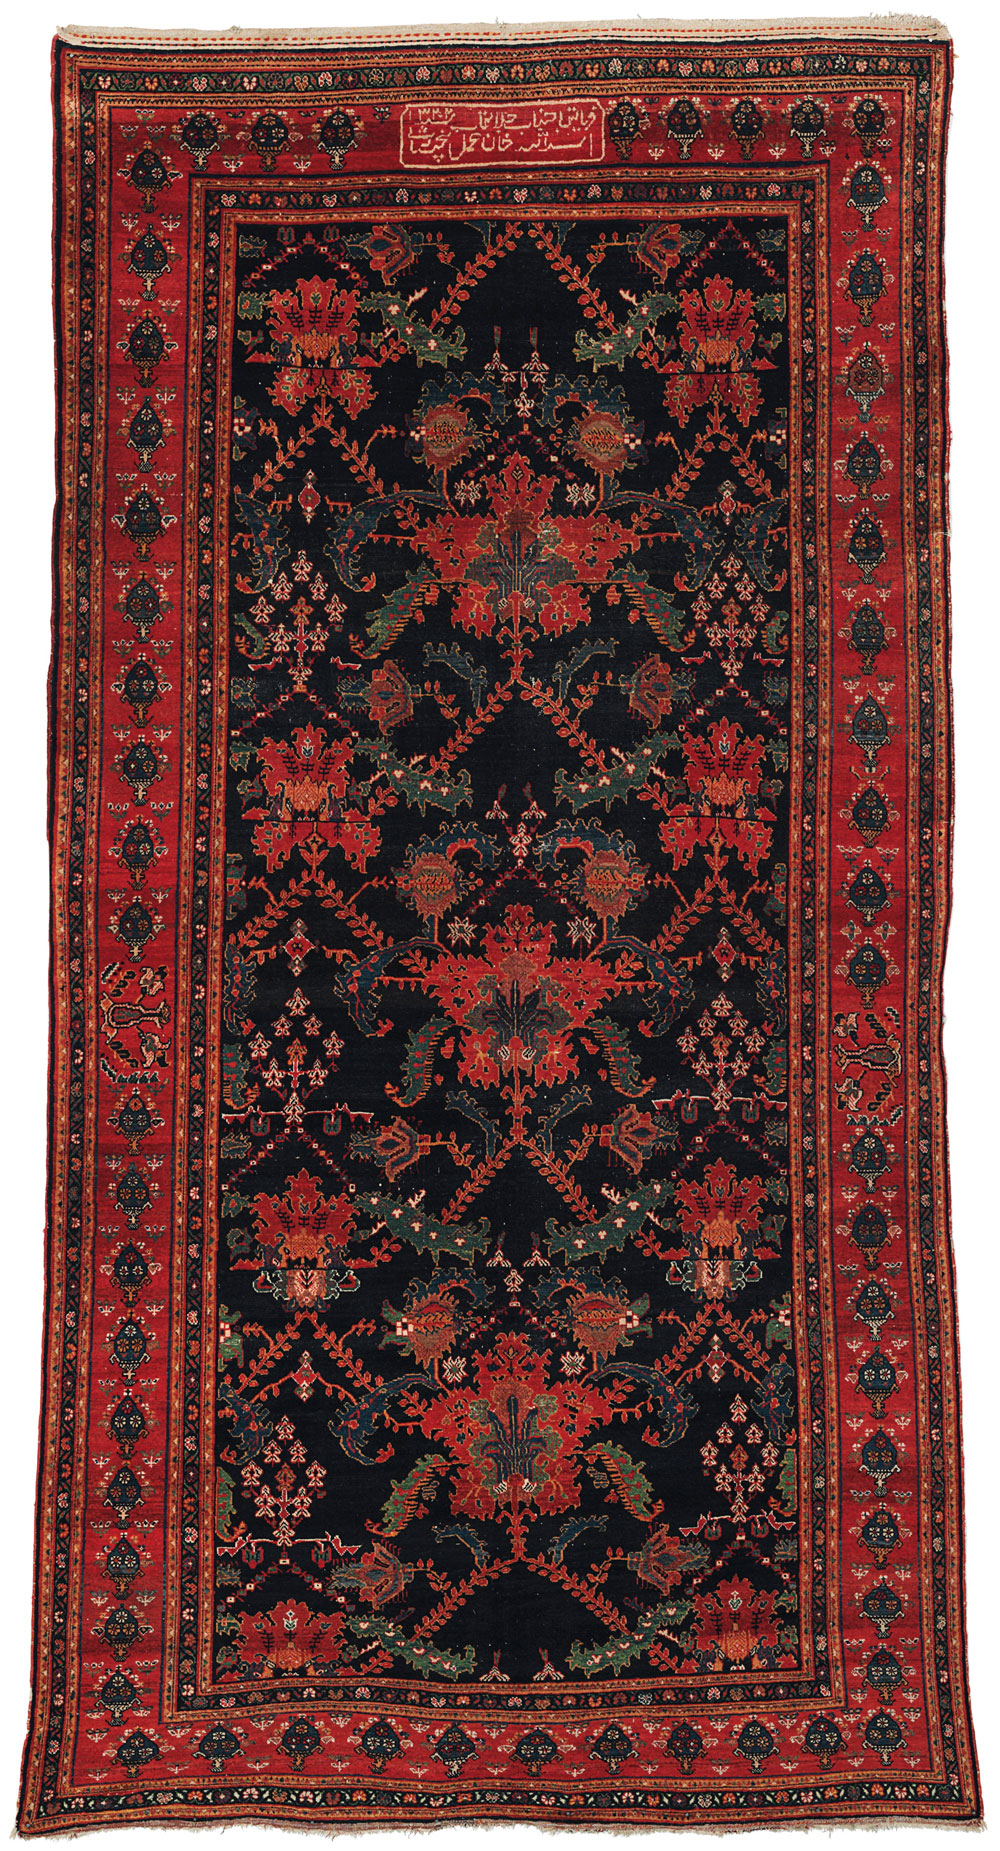 "The Opulent Eye auction, Christie's New York 18 November, Bakhtiari carpet, west Persia, dated 1904-1905 AD/AH 1322, 409cm x 206cm (13'5"" x 6'9""), estimate $8,000 - 12,000"